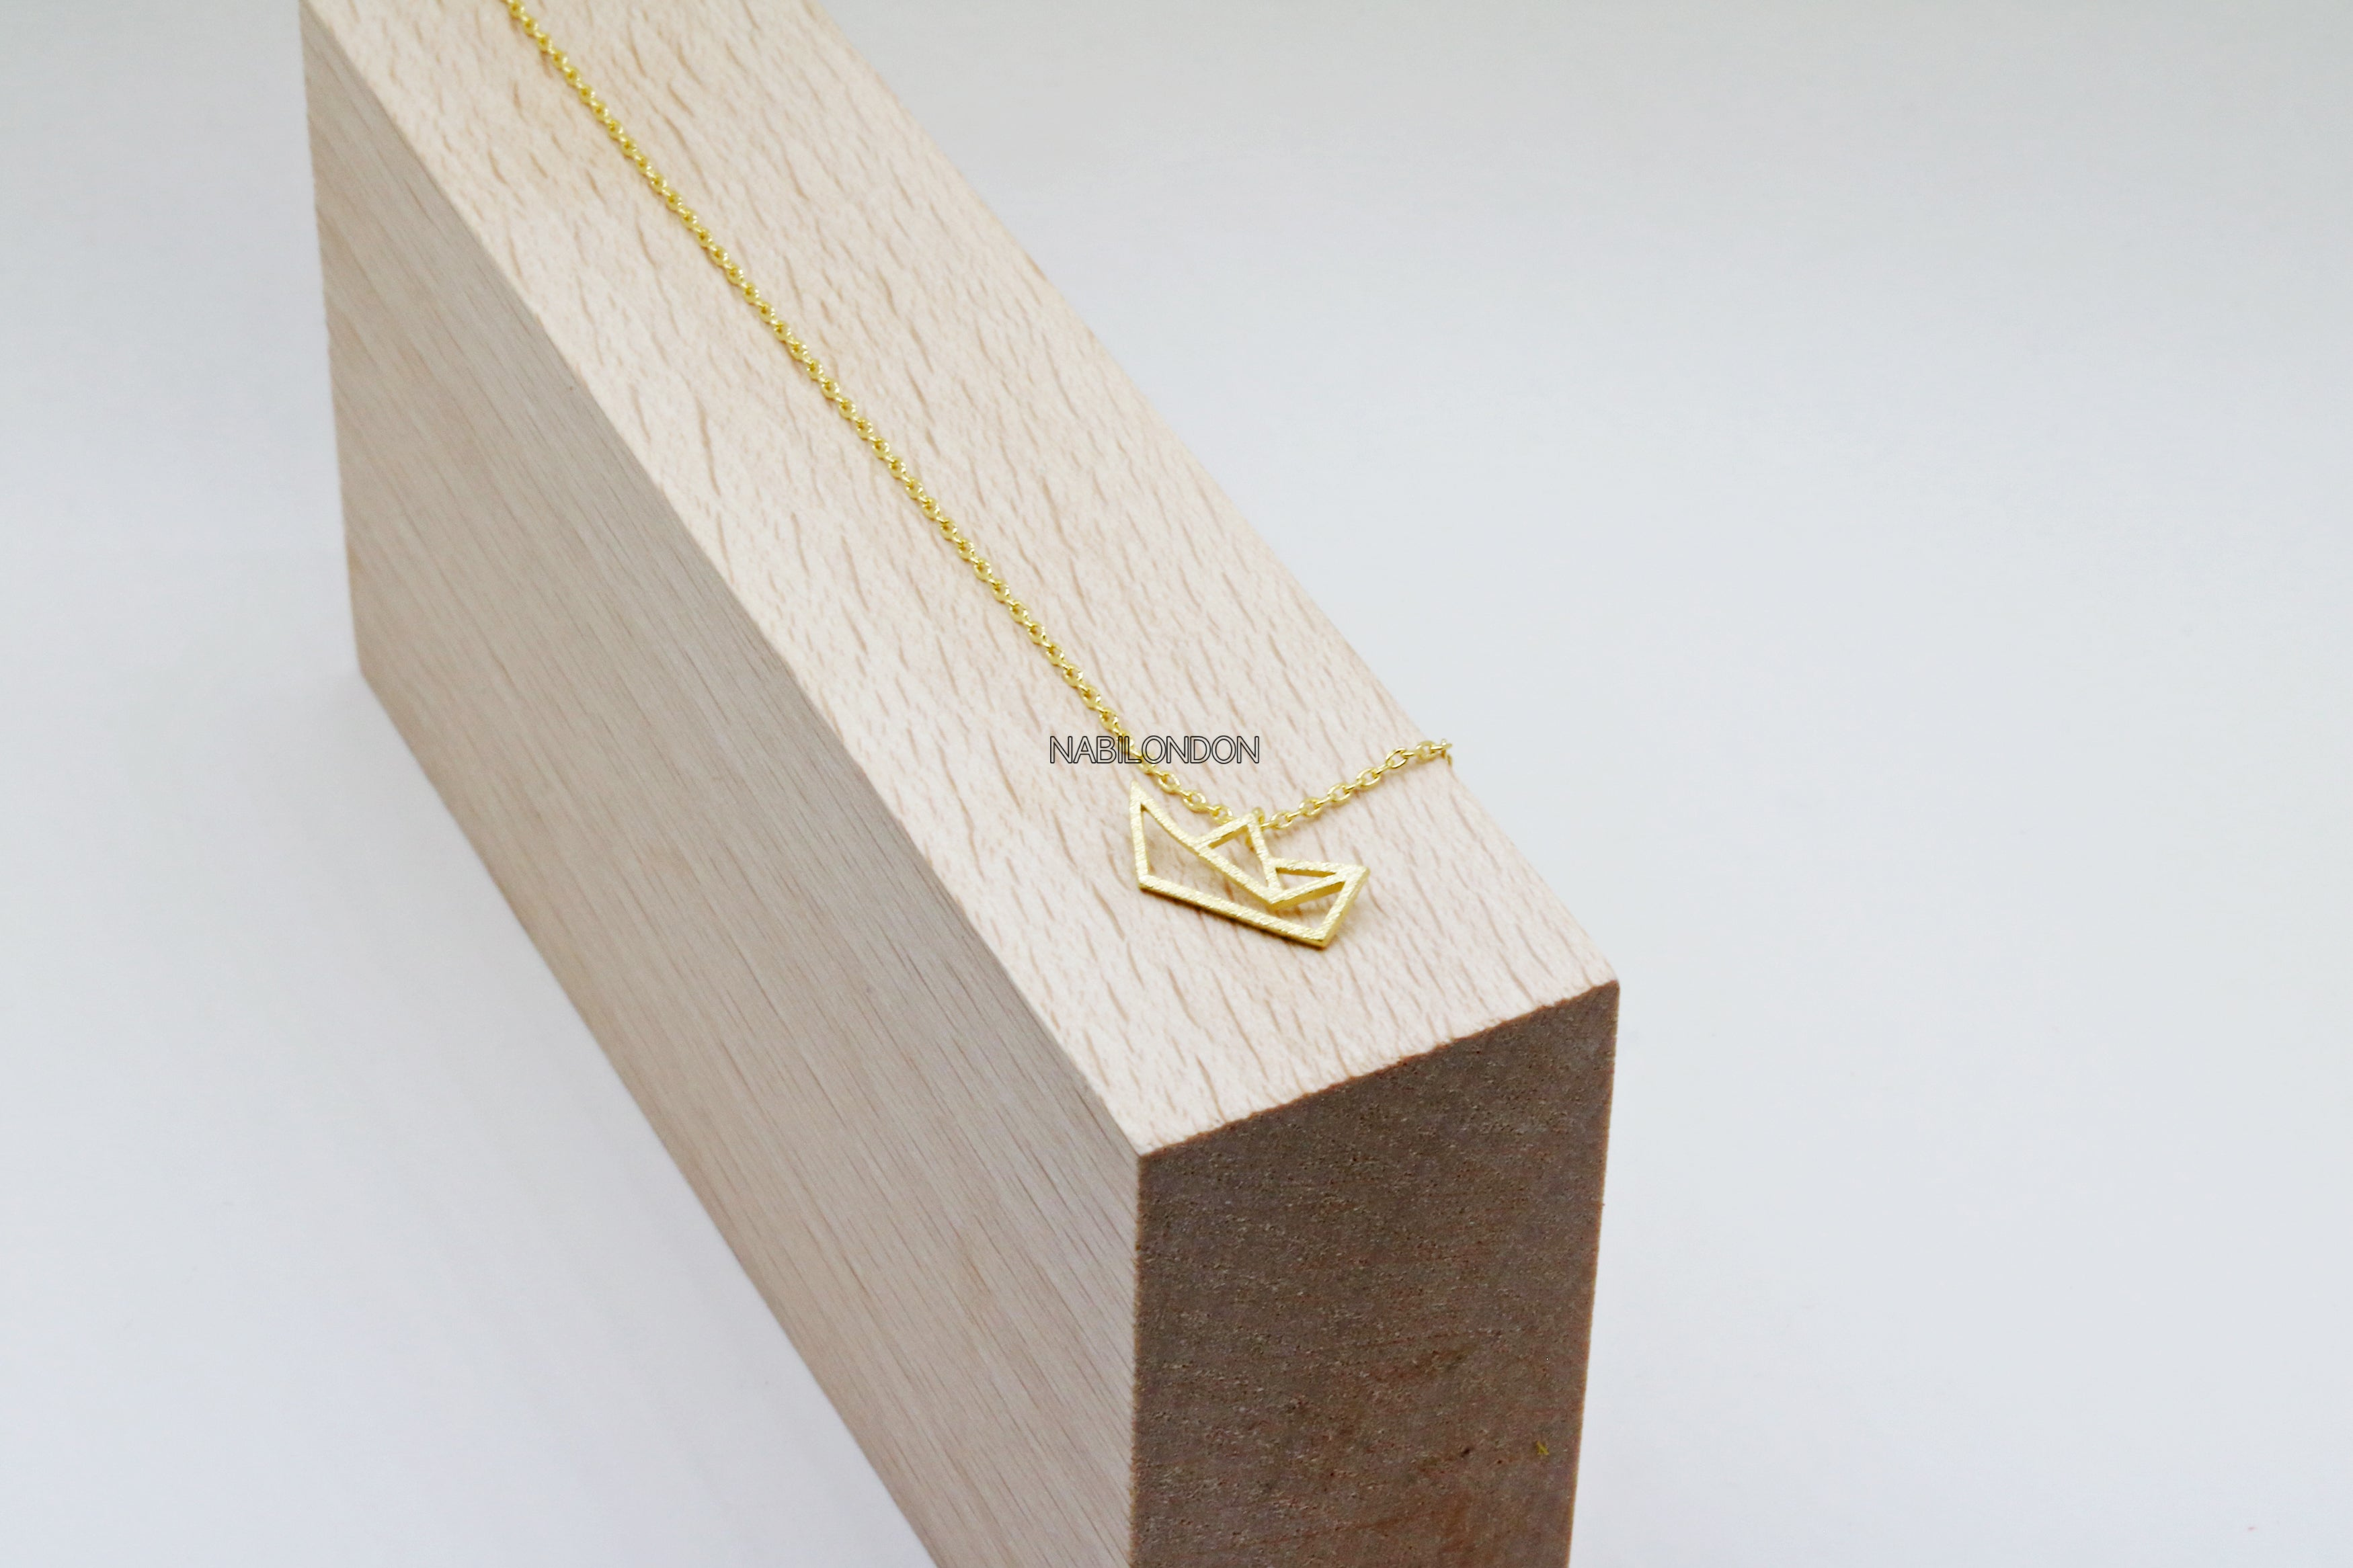 Line ship necklace